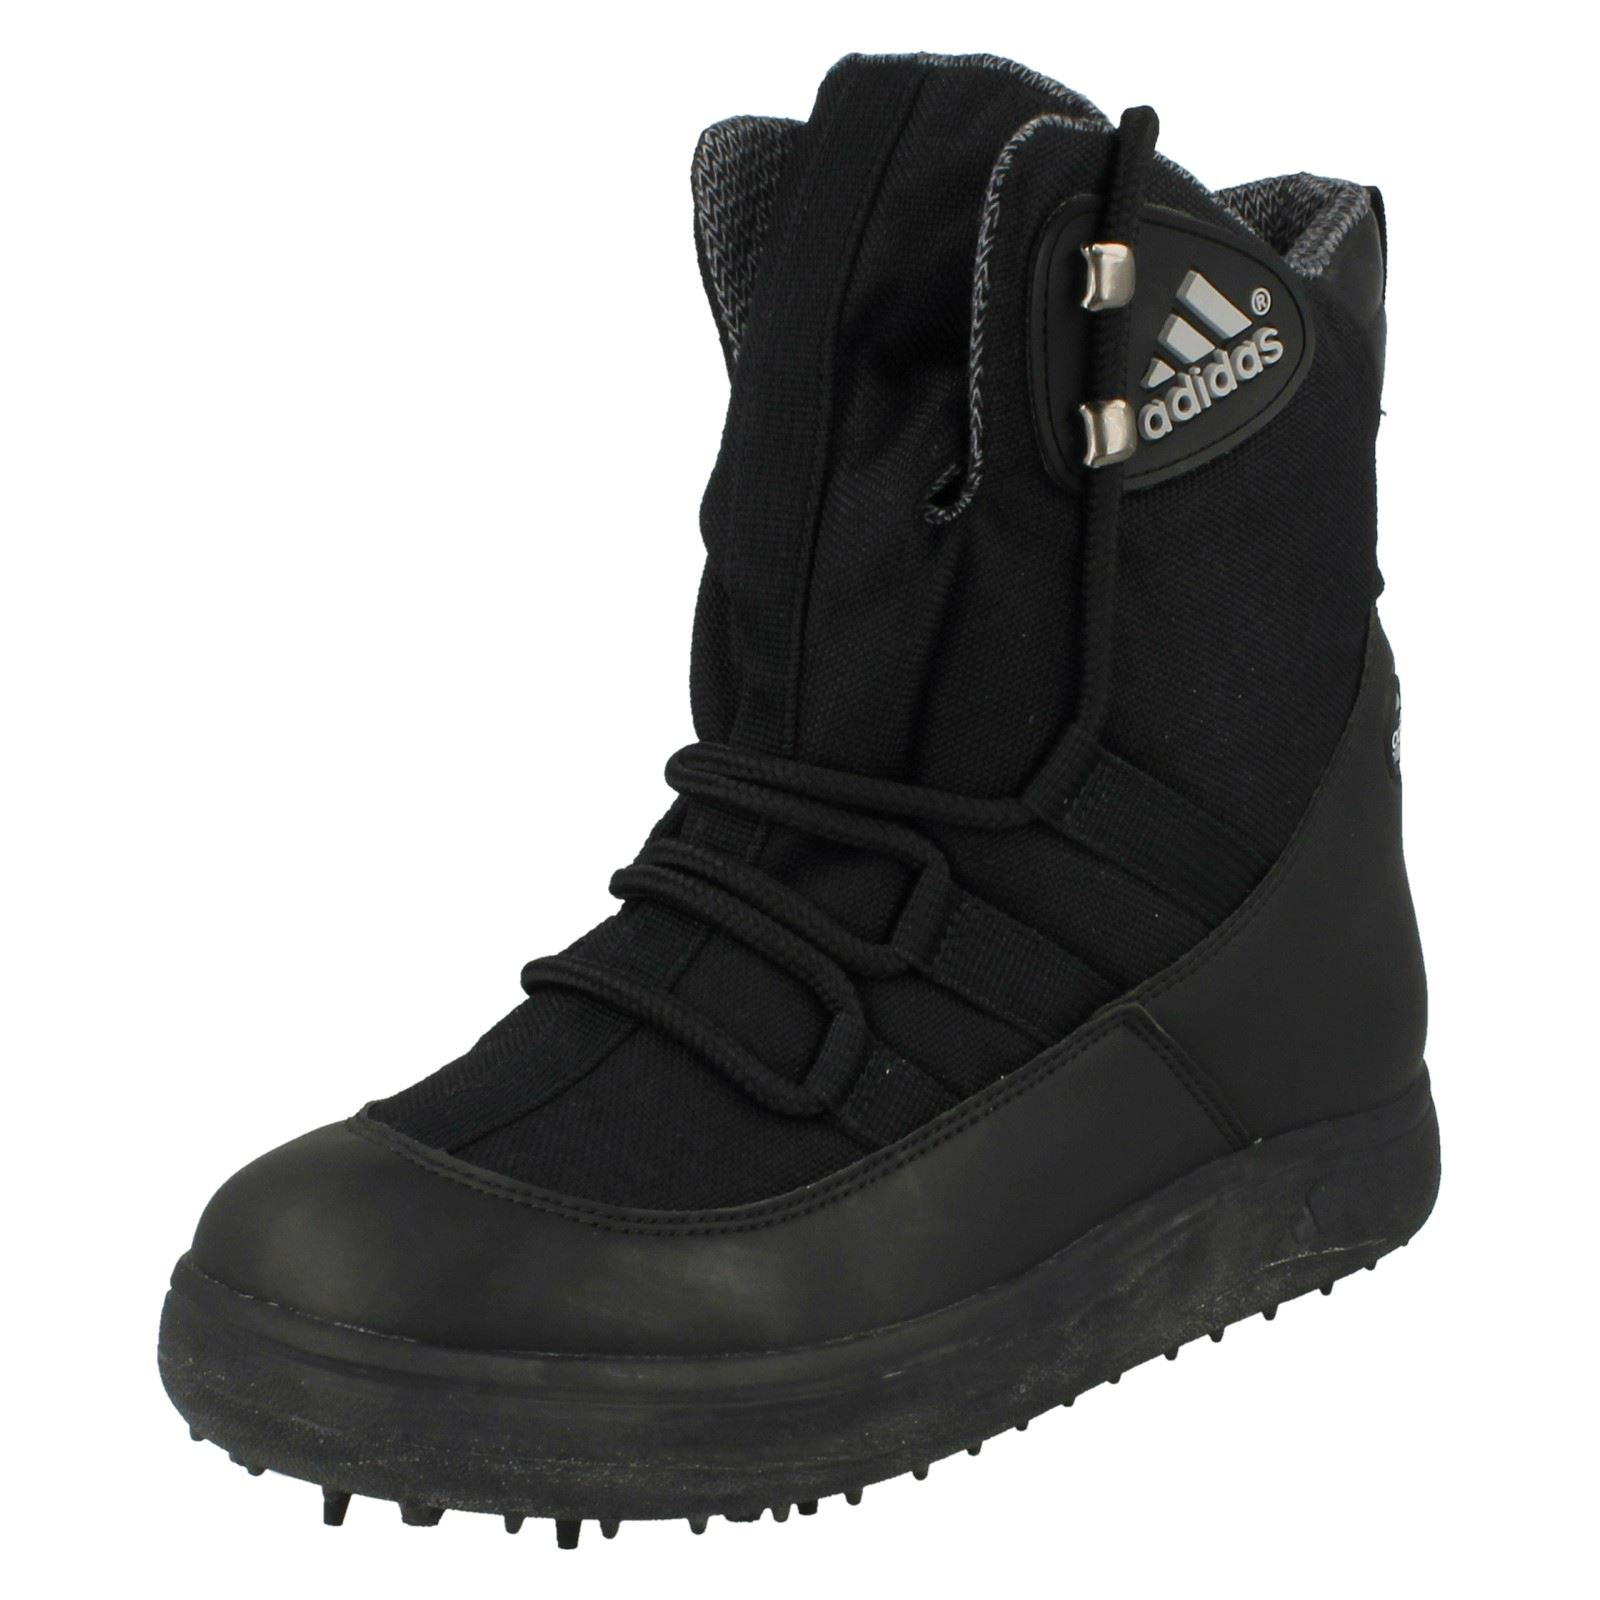 de3e69c20ee Details about Boys Adidas Lace Up Golf Boots 'Mud Skipper II'